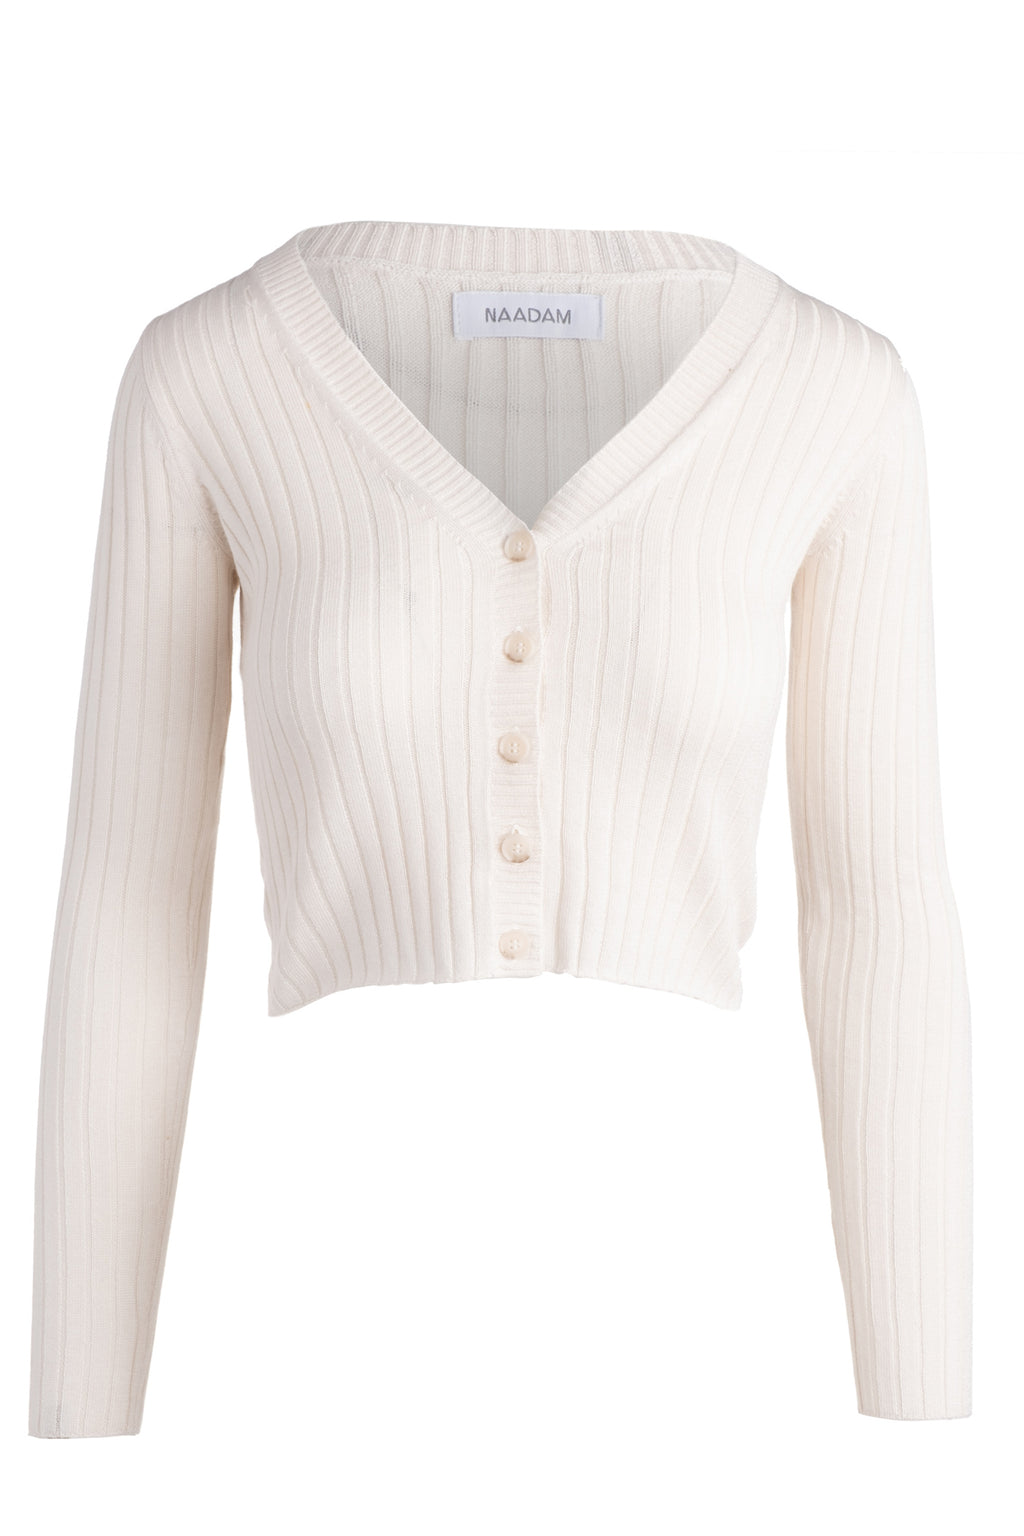 naadam ribbed cropped cardigan white